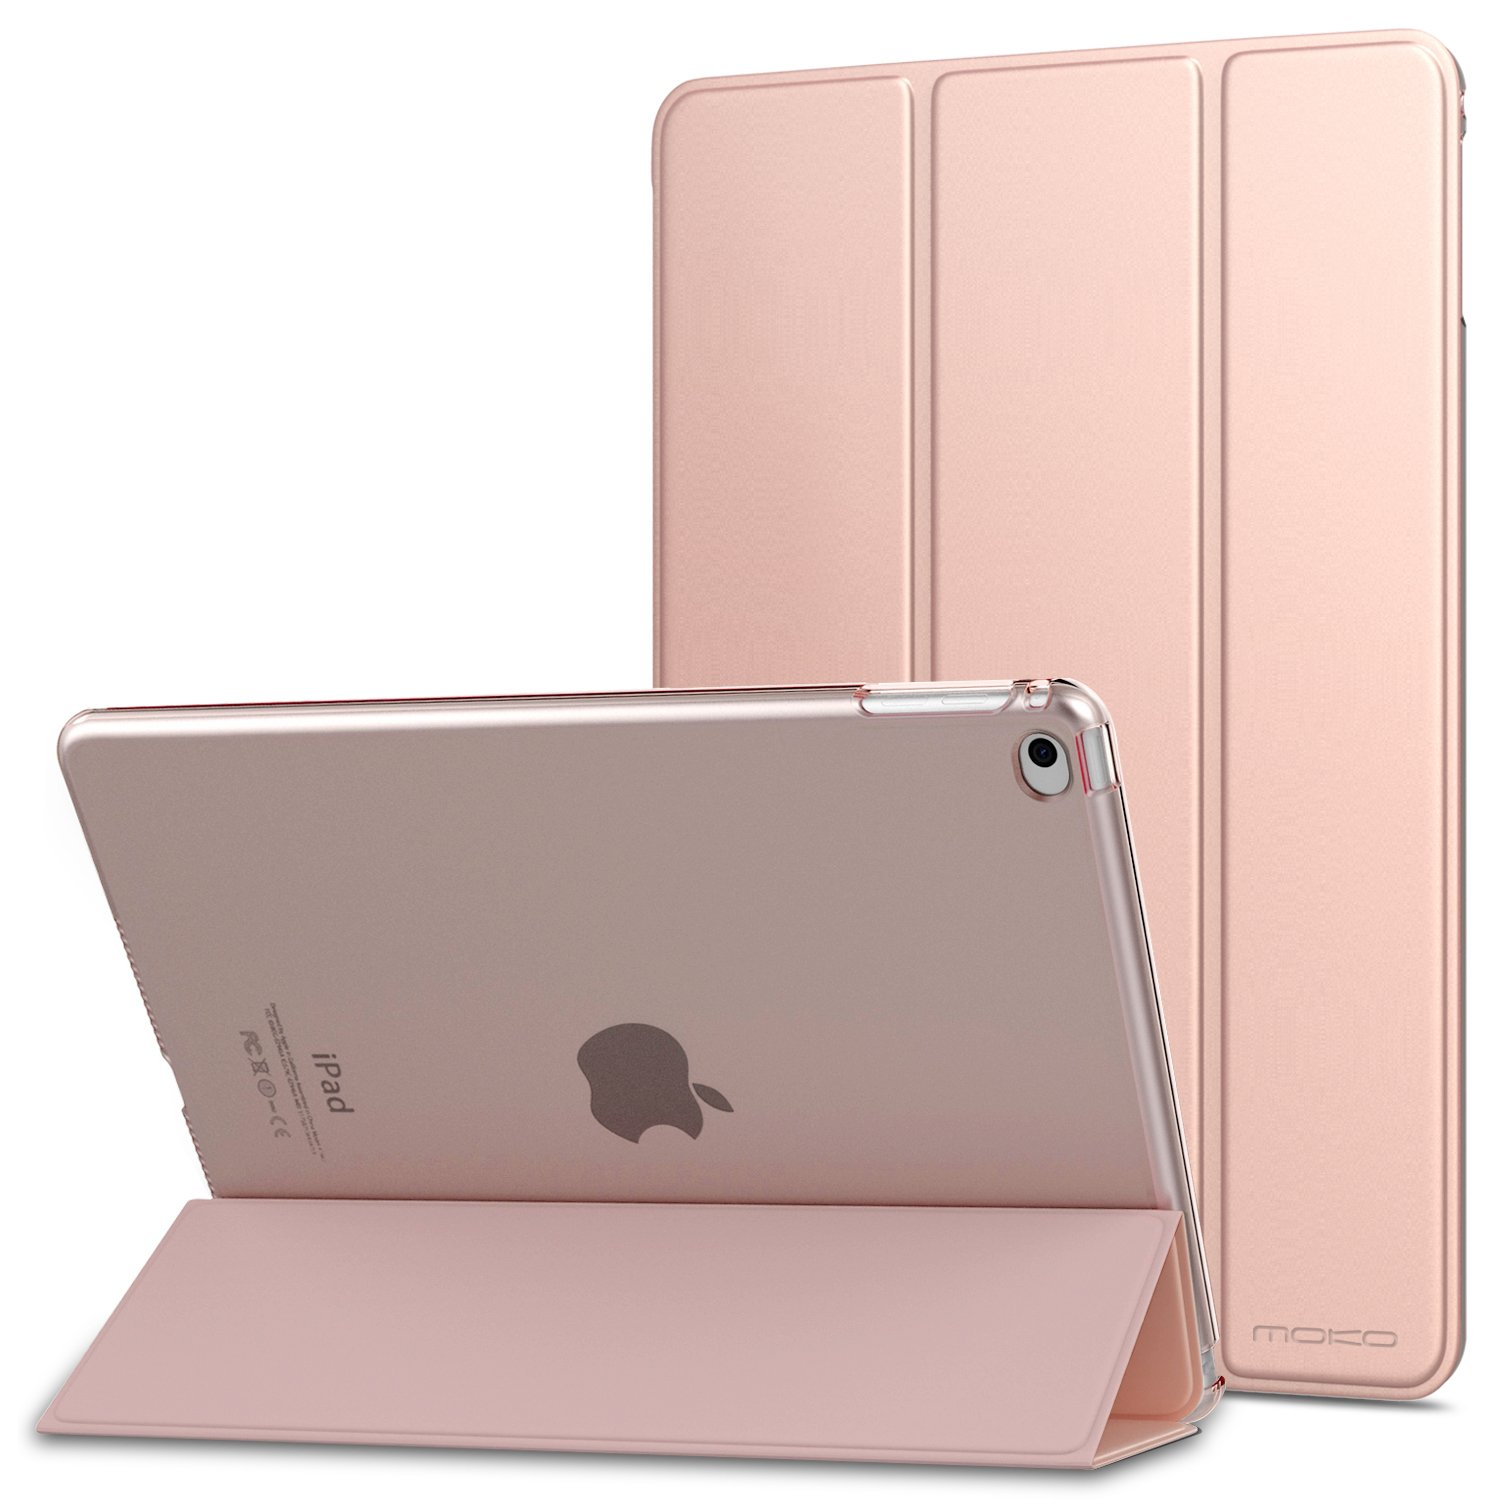 """MoKo iPad Air 2 Case - Slim Lightweight Smart-Shell Stand Cover with Translucent Frosted Back Protector for Apple iPad Air 2 9.7"""" Tablet, Rose Gold (with Auto Wake/Sleep, Not fit iPad Air)"""